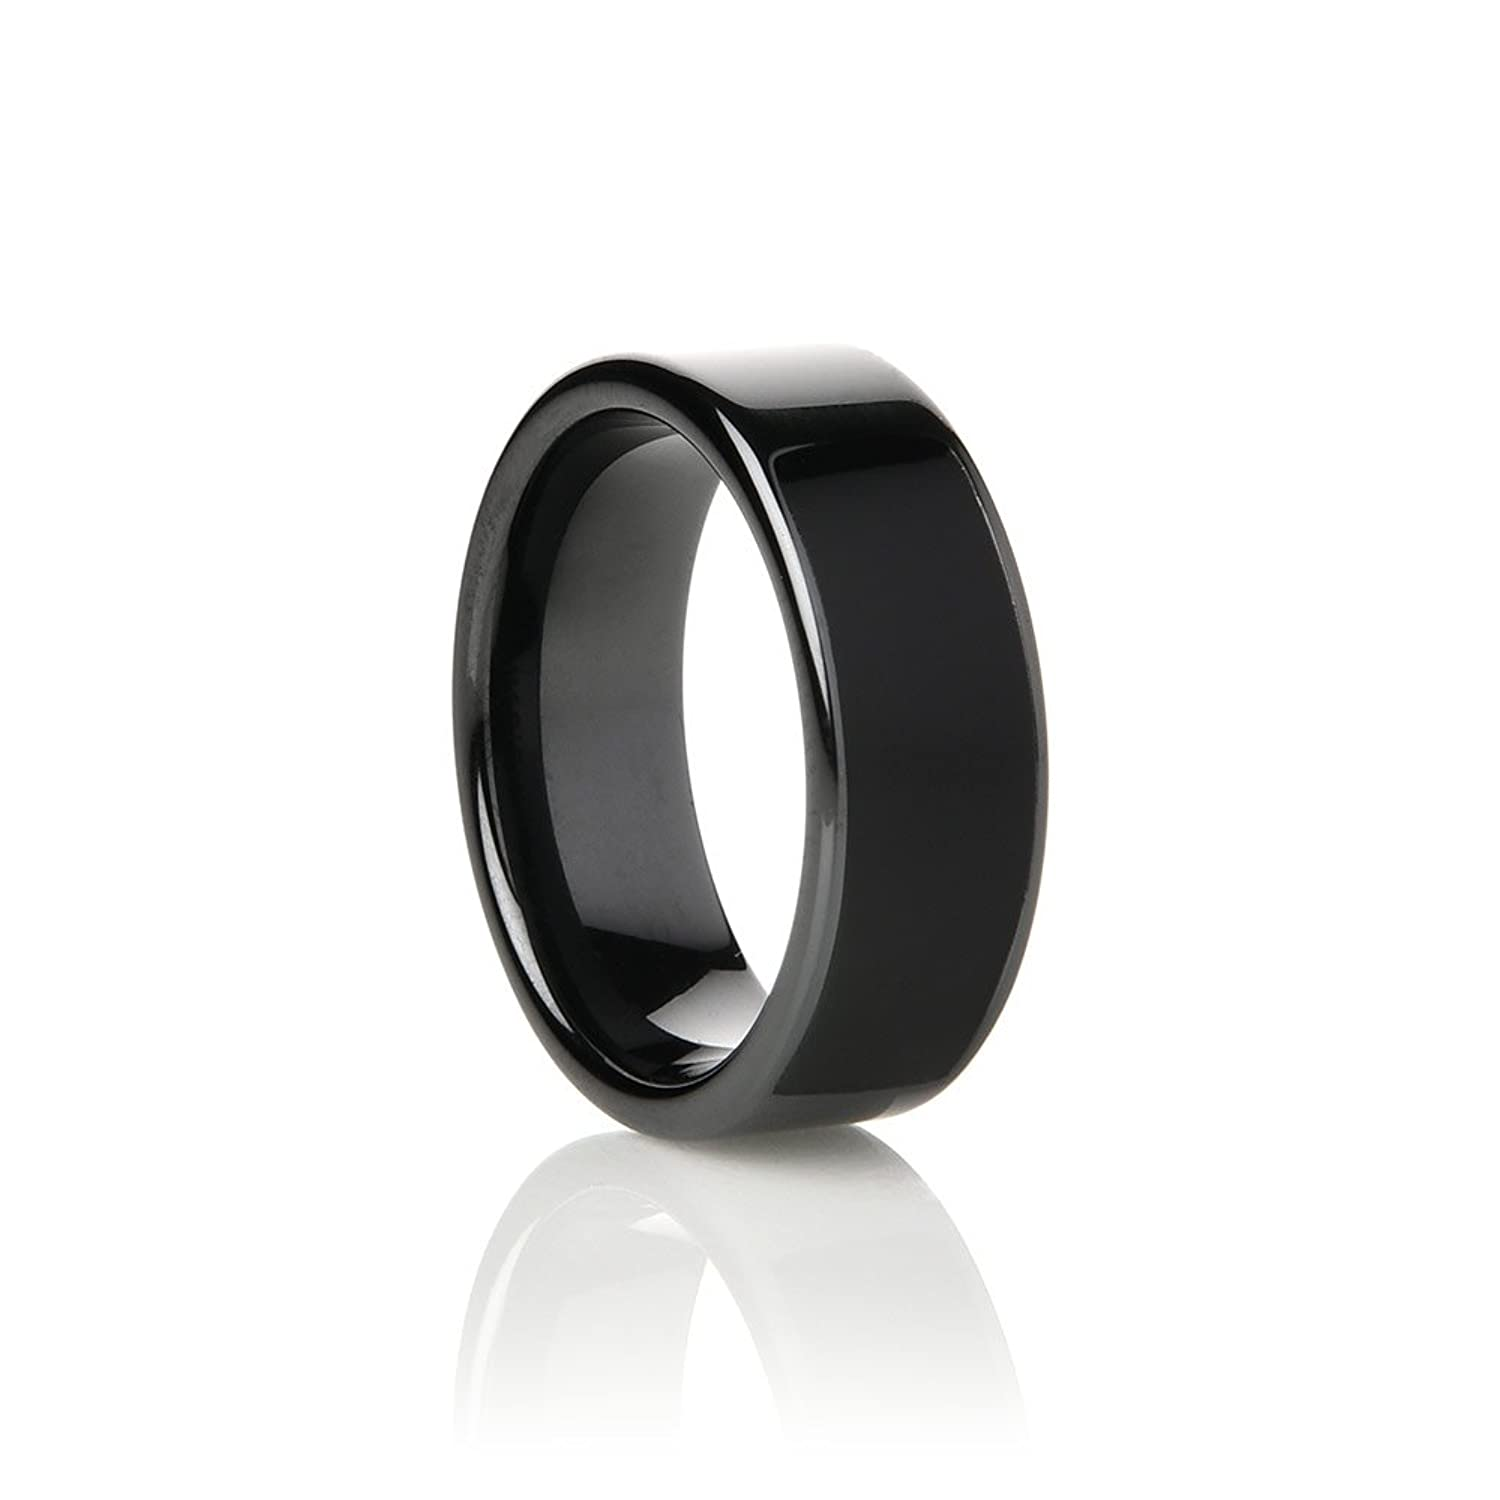 jewelry warehouse image product collections ceramic rings